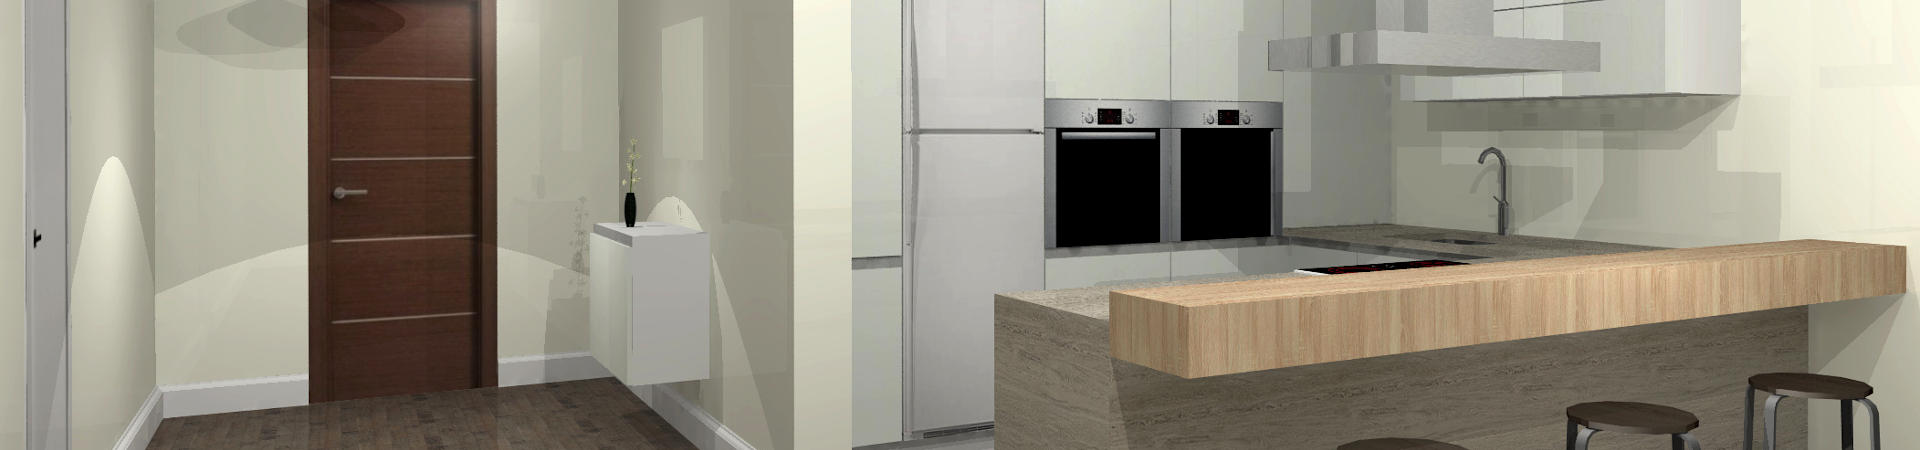 Articles about Quick3DPlan, 3D Kitchen design software for Windows and Mac, on major download sites, kitchens blogs, etc.